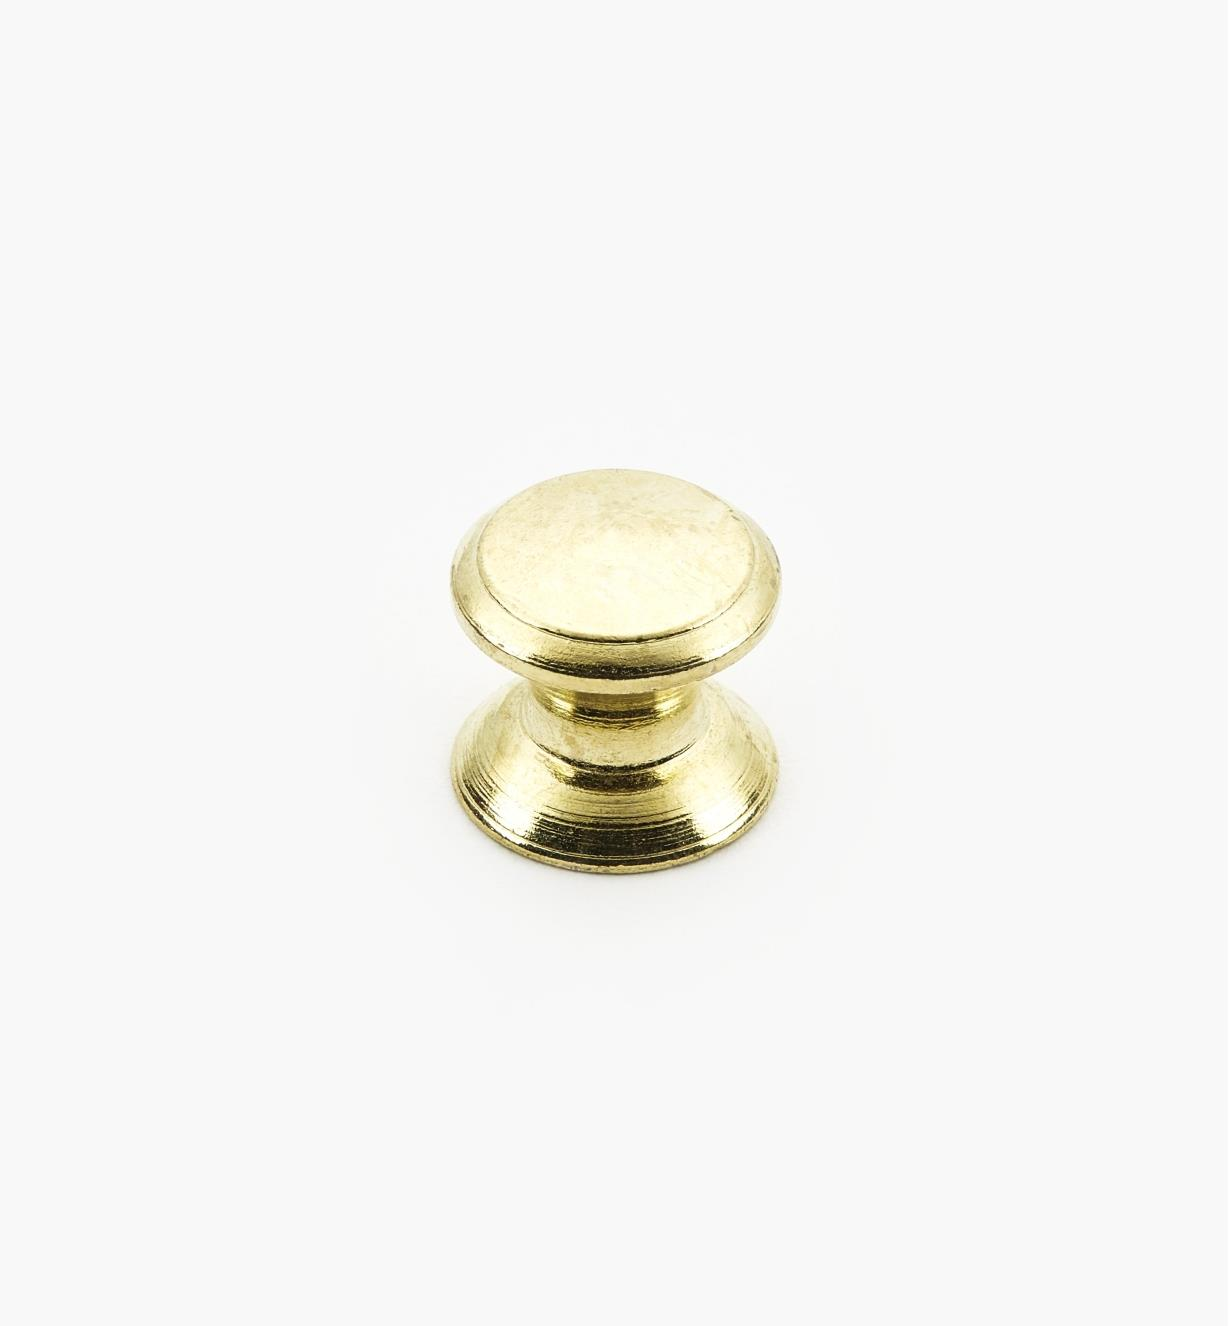 00D4720 - 13mm x 11mm Bolt-On